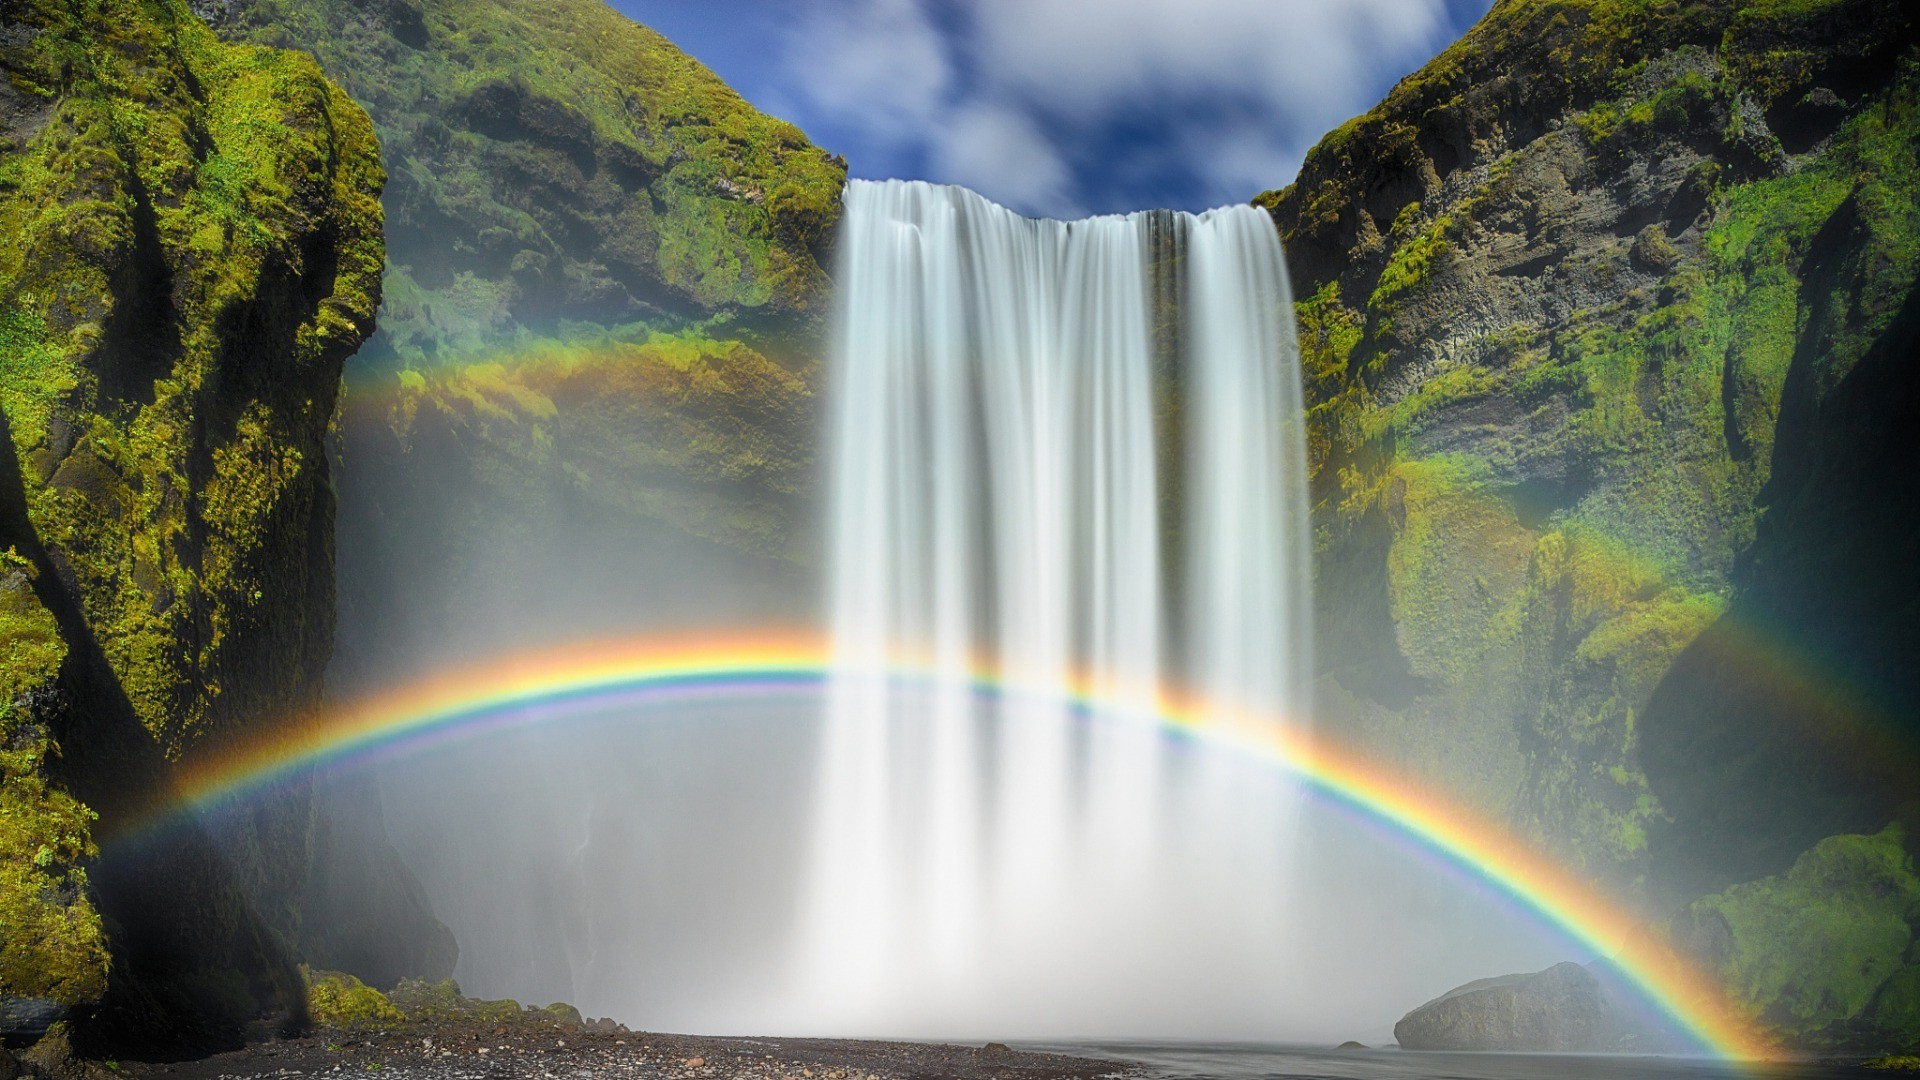 Rainbow Falls Hawaii Wallpaper Nature Waterfall Rainbows Moss Long Exposure Iceland